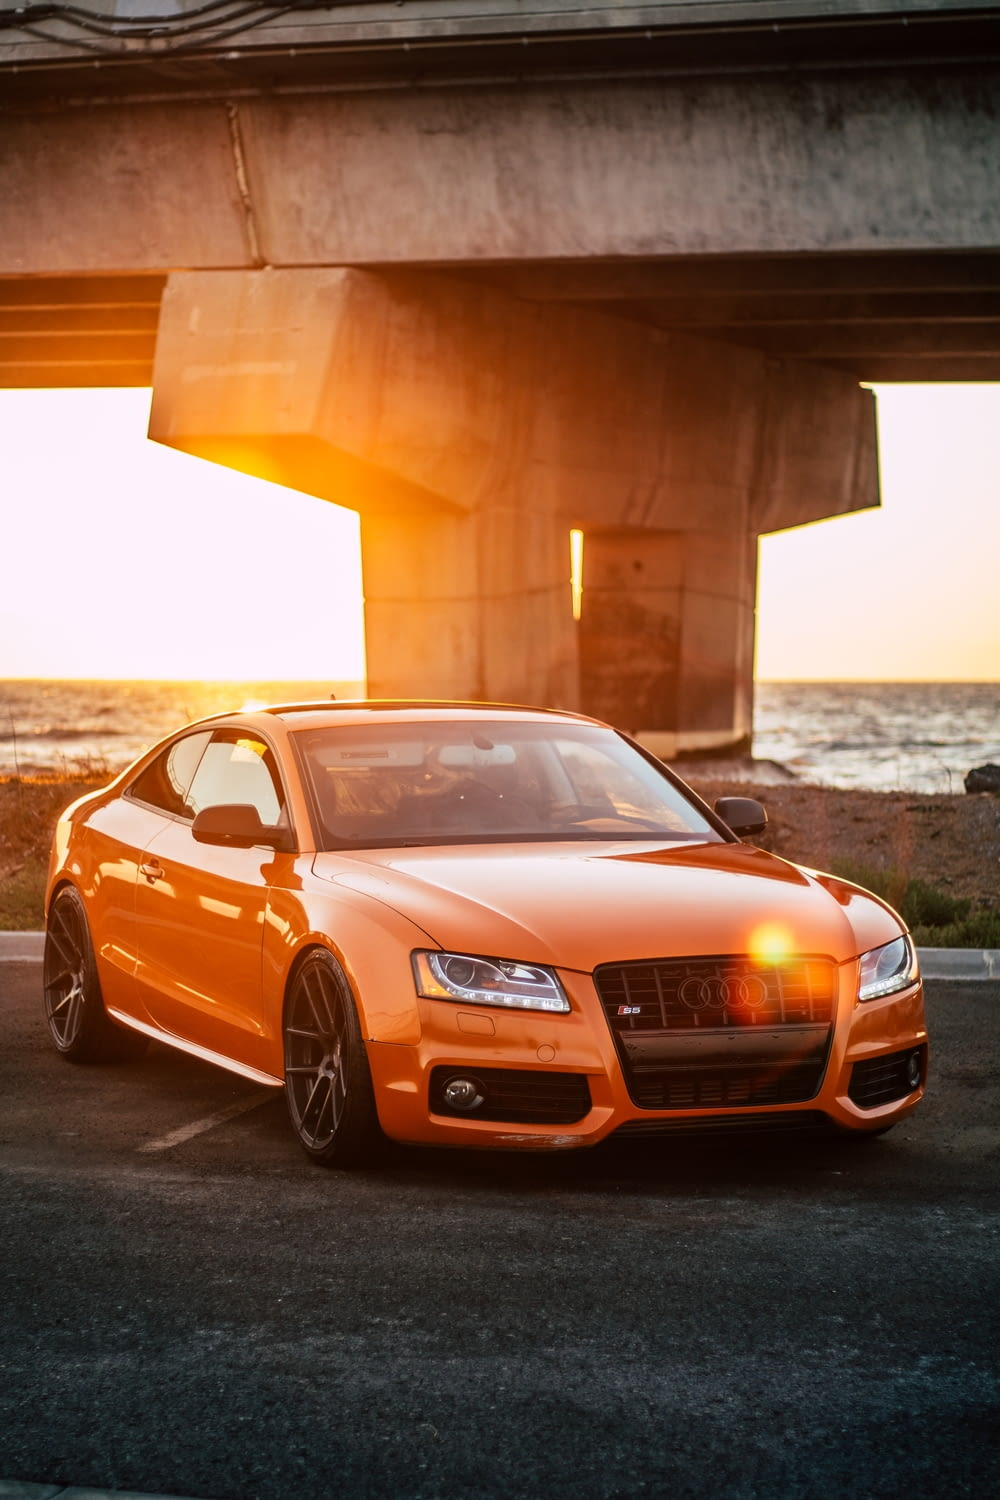 orange Audi coupe parked on gray concrete road